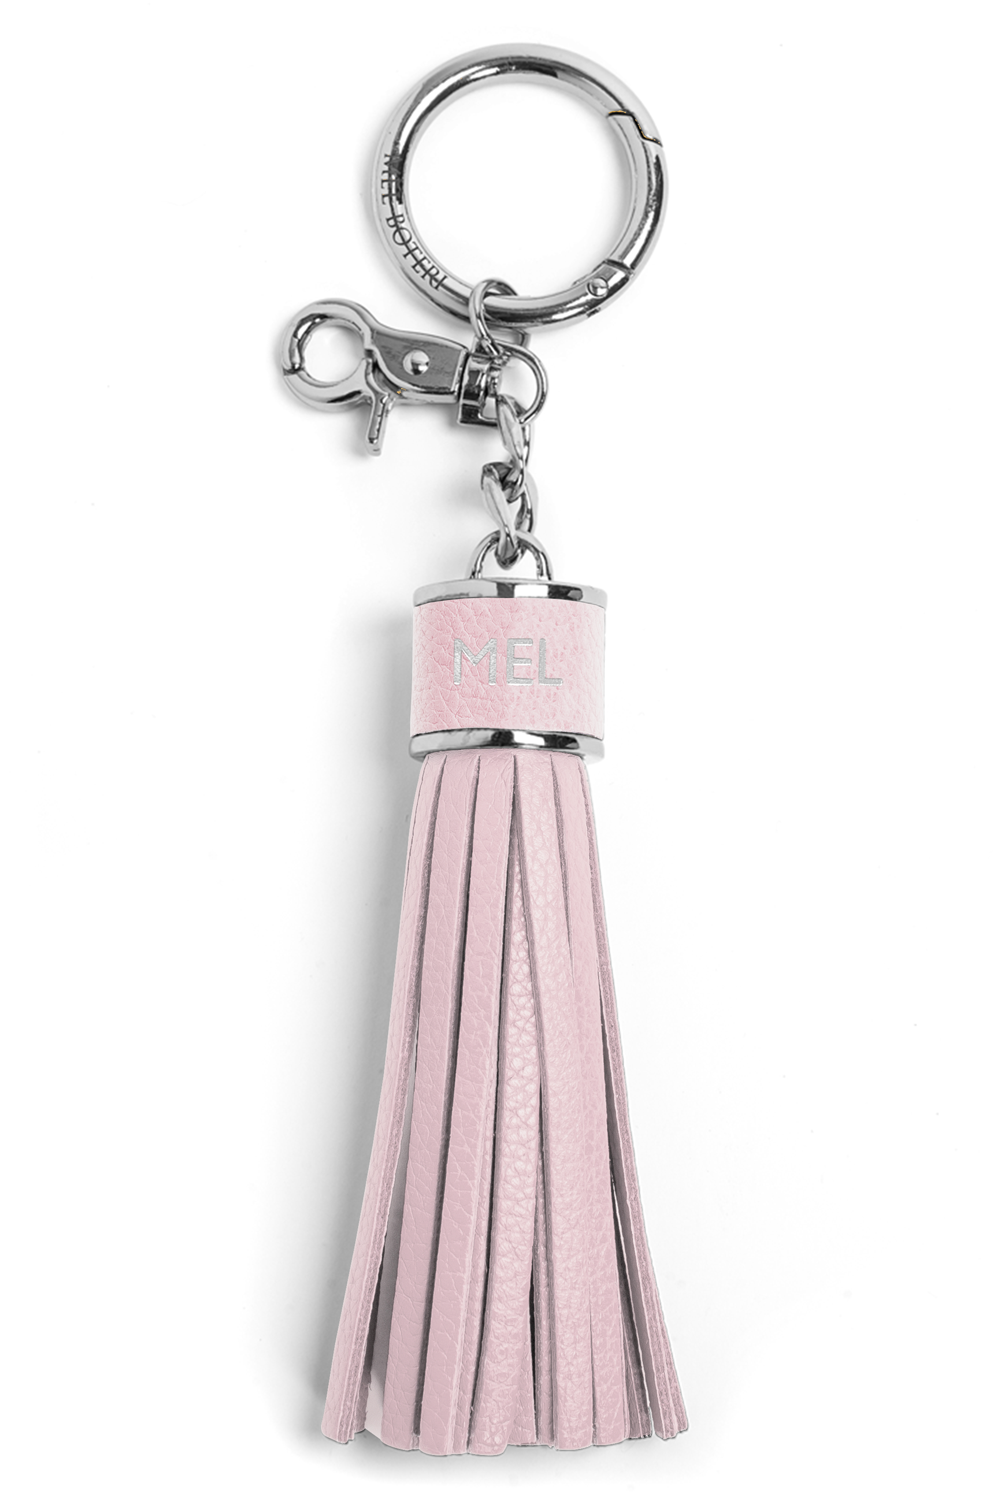 The Mel Boteri Pebbled-Leather Tassel Charm | Doll Leather With Silver Hardware | Mel Boteri Gift Ideas